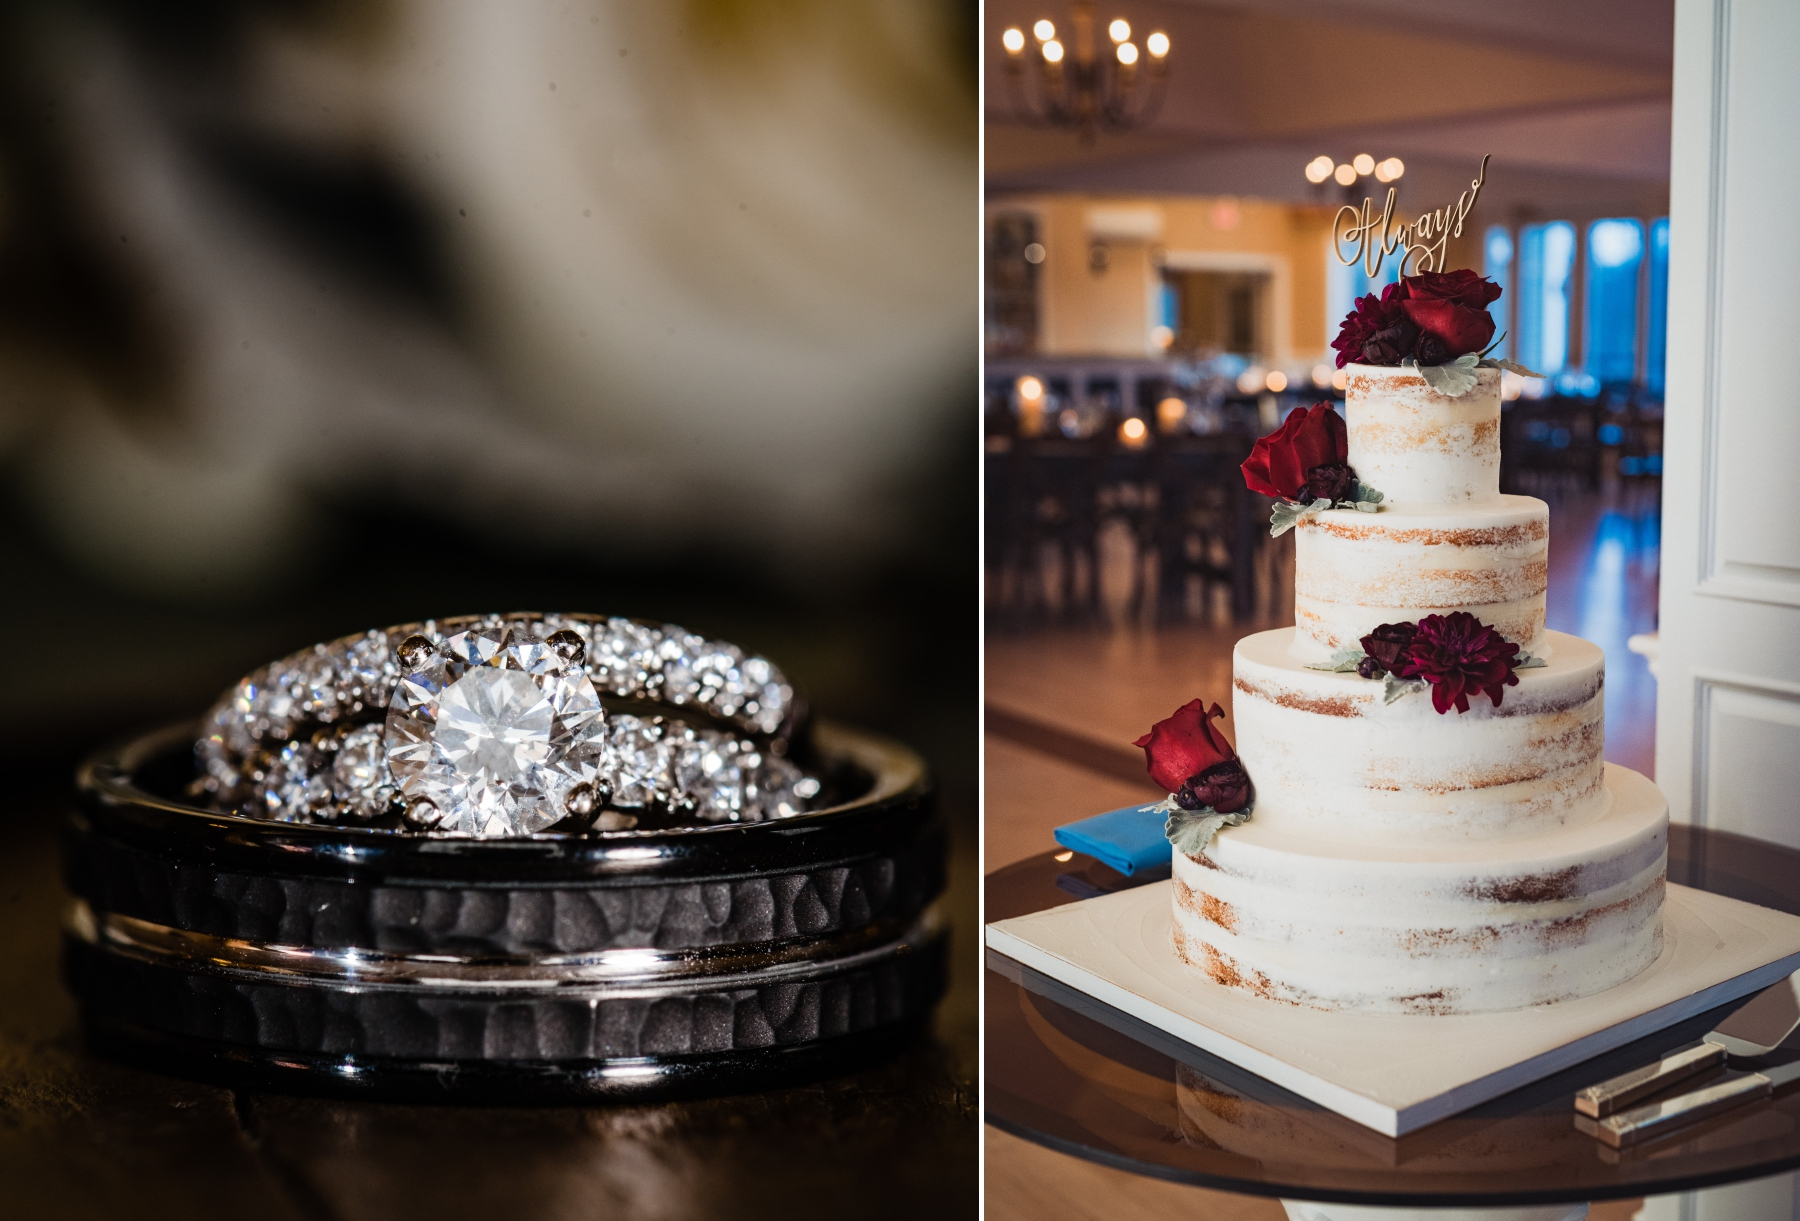 Cake and rings from Tara and Zach's New York / New Jersey wedding at Rock Island Lake Club.